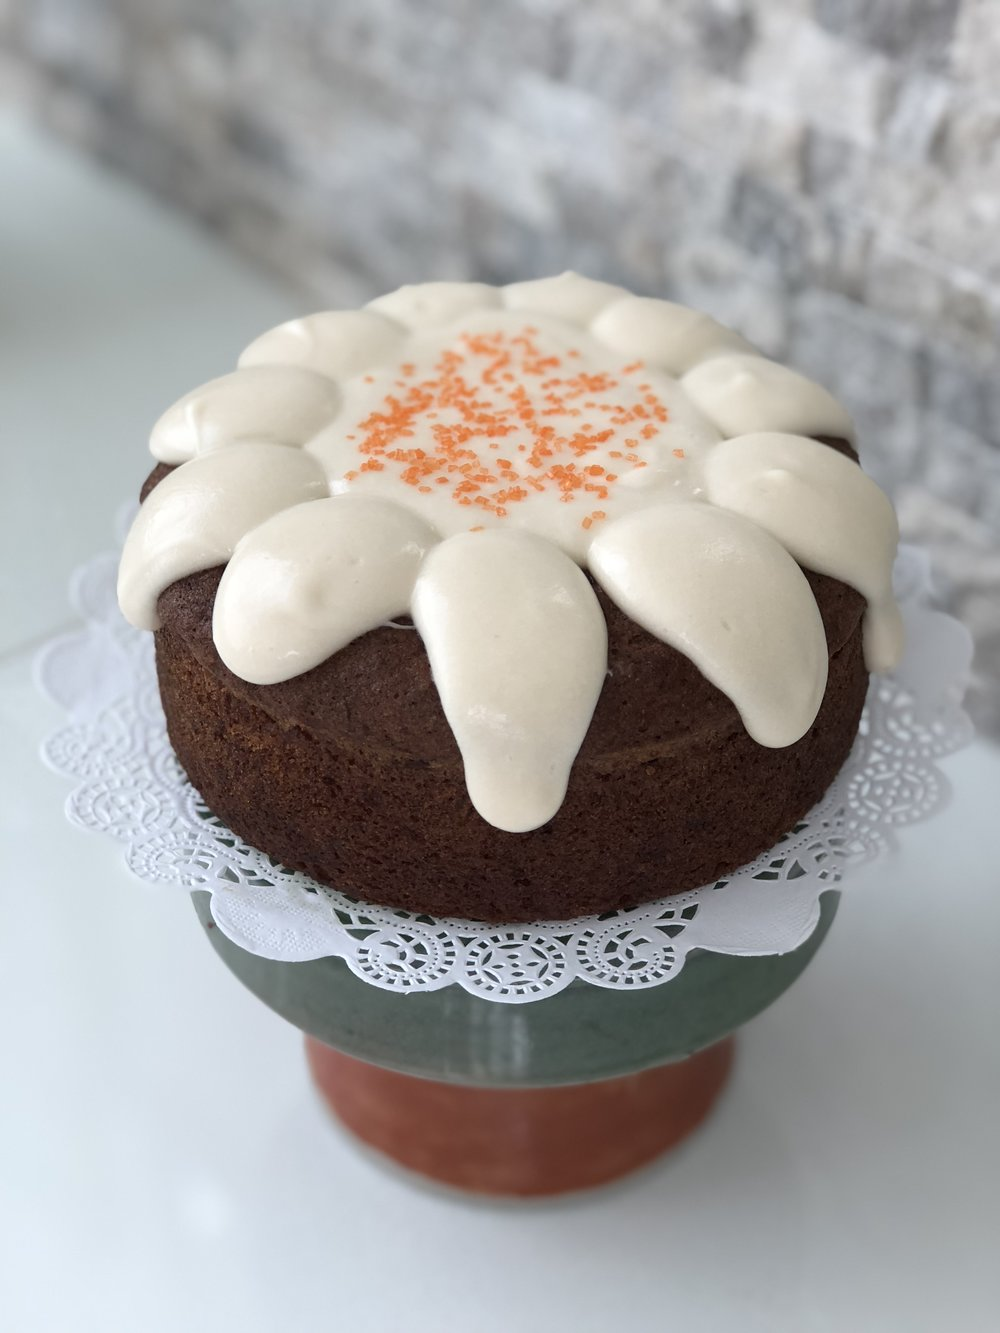 Gluten, Dairy & Soy Free Carrot Cake with DF Cream Cheese Frosting  $25 One Layer 6' round